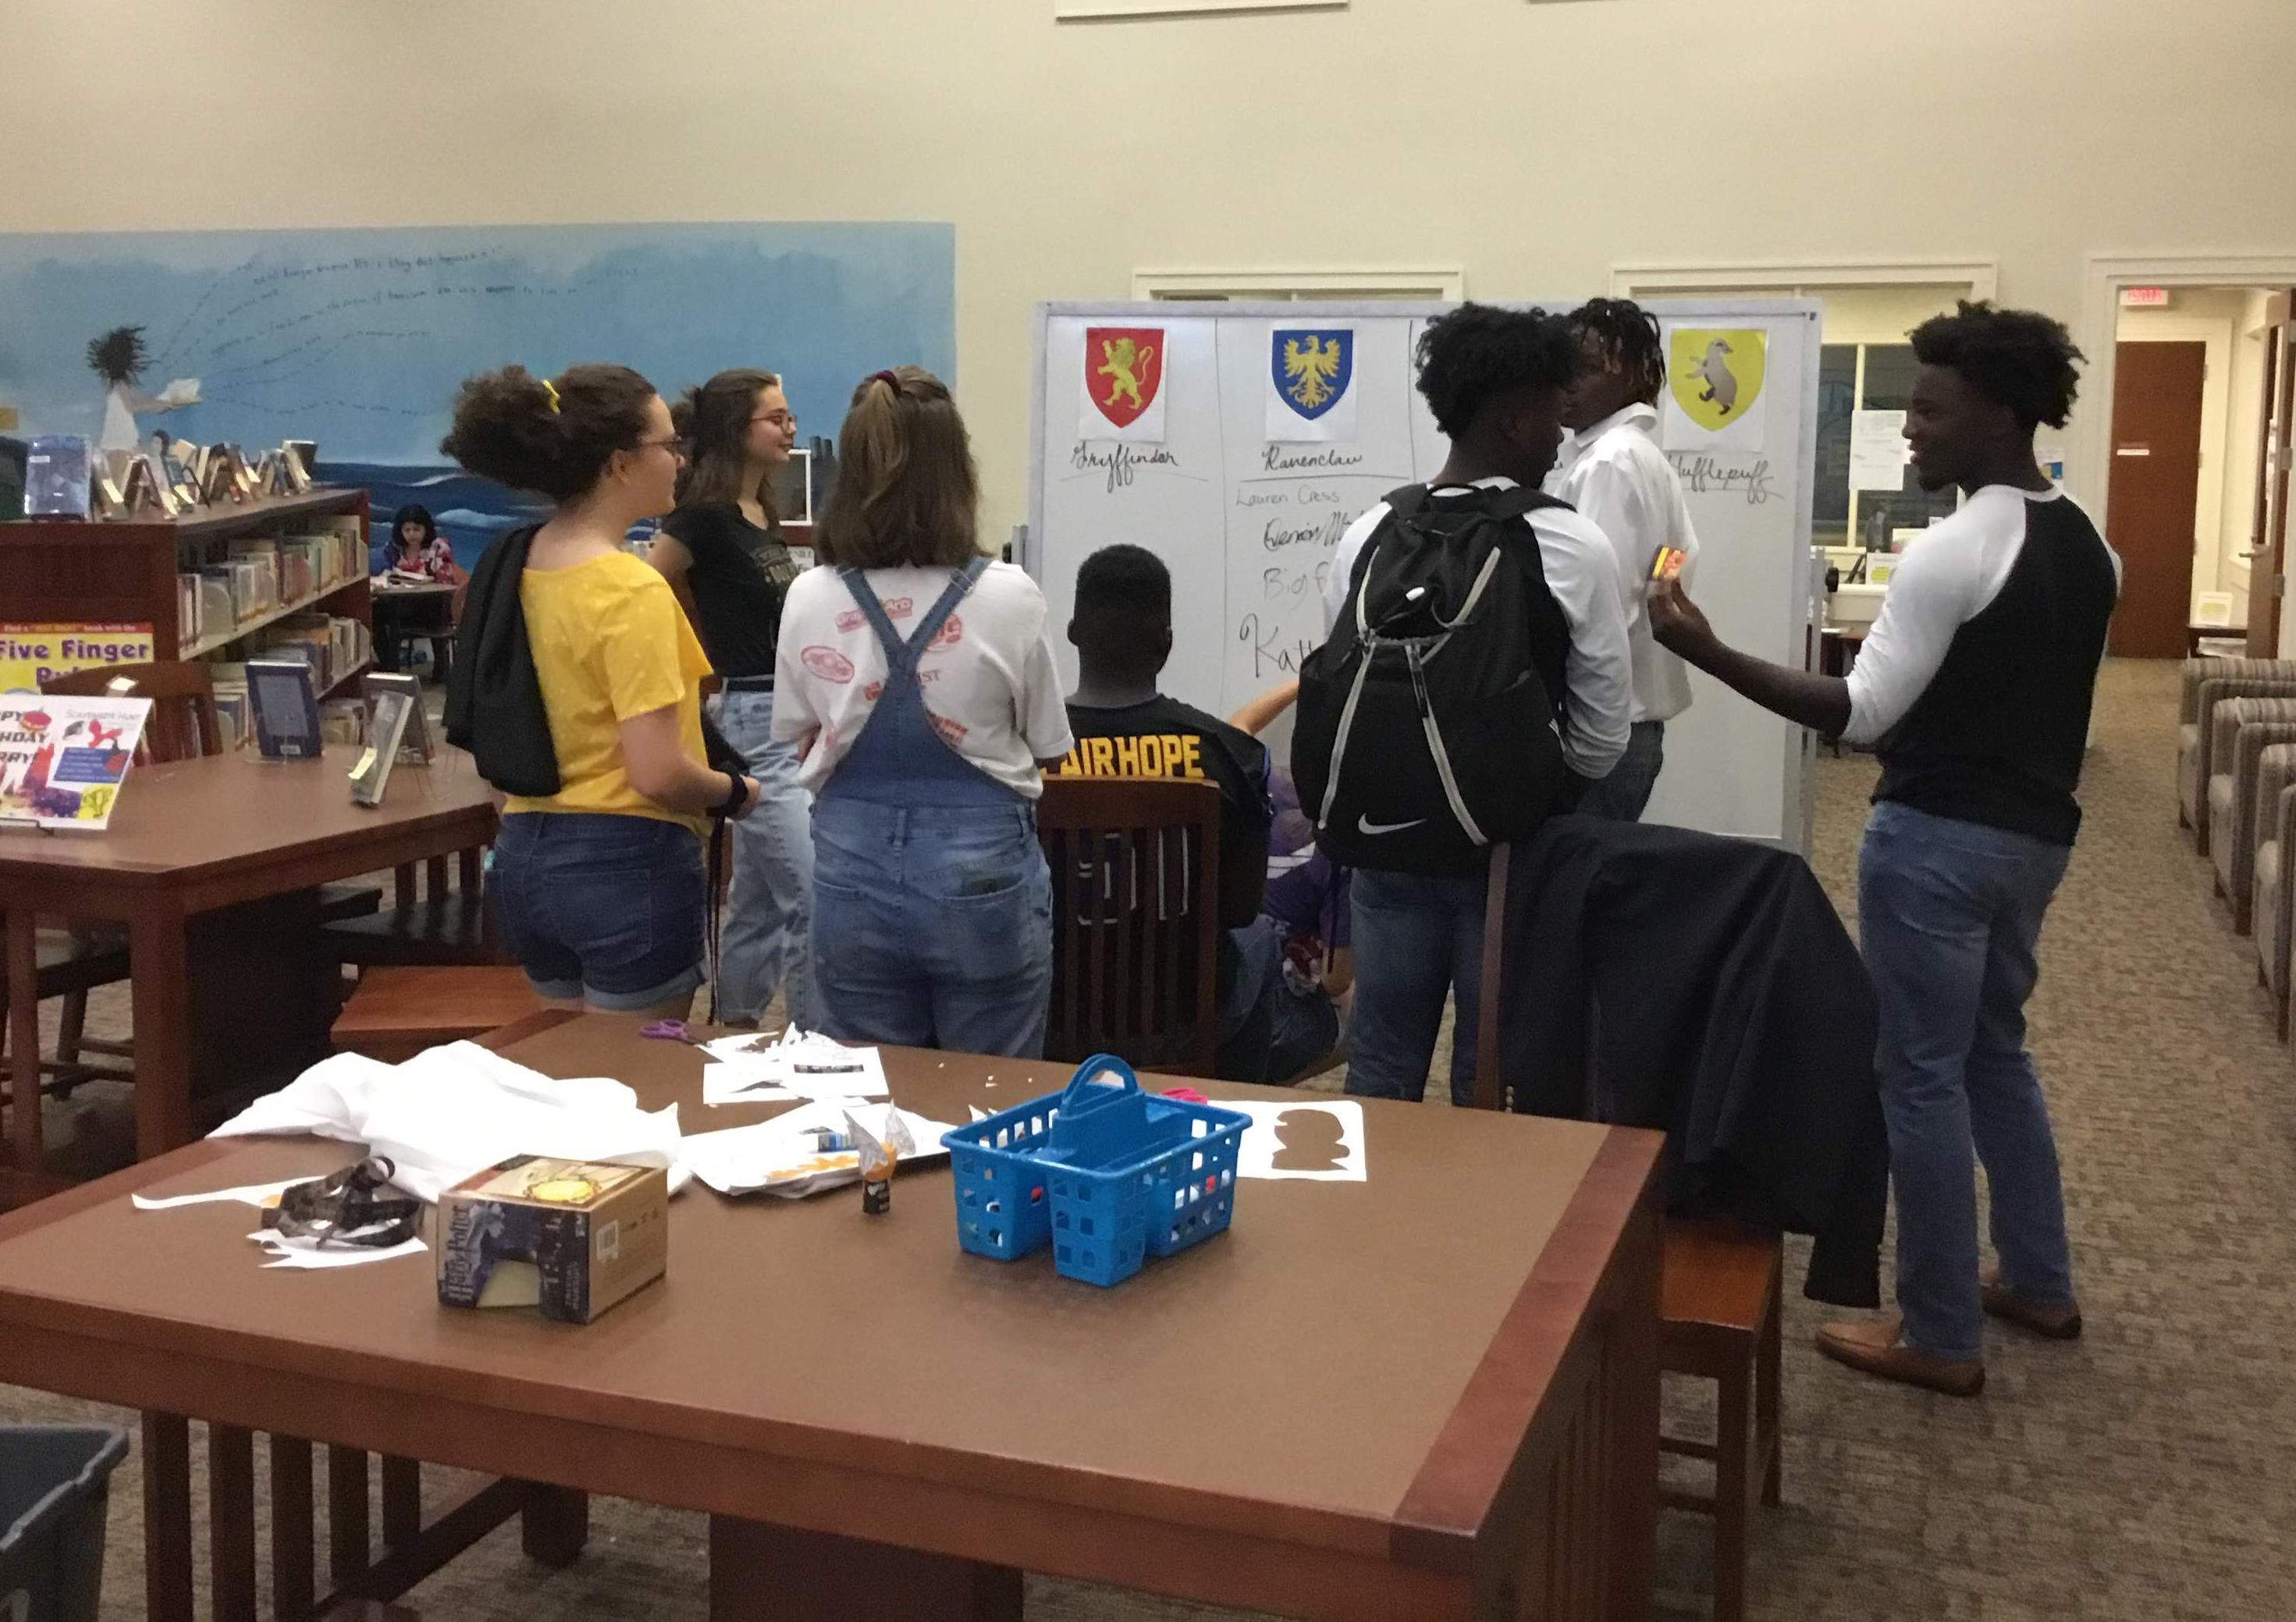 Community teens writing their names under their house name at the Harry Potter Event at SFPL in July 2018